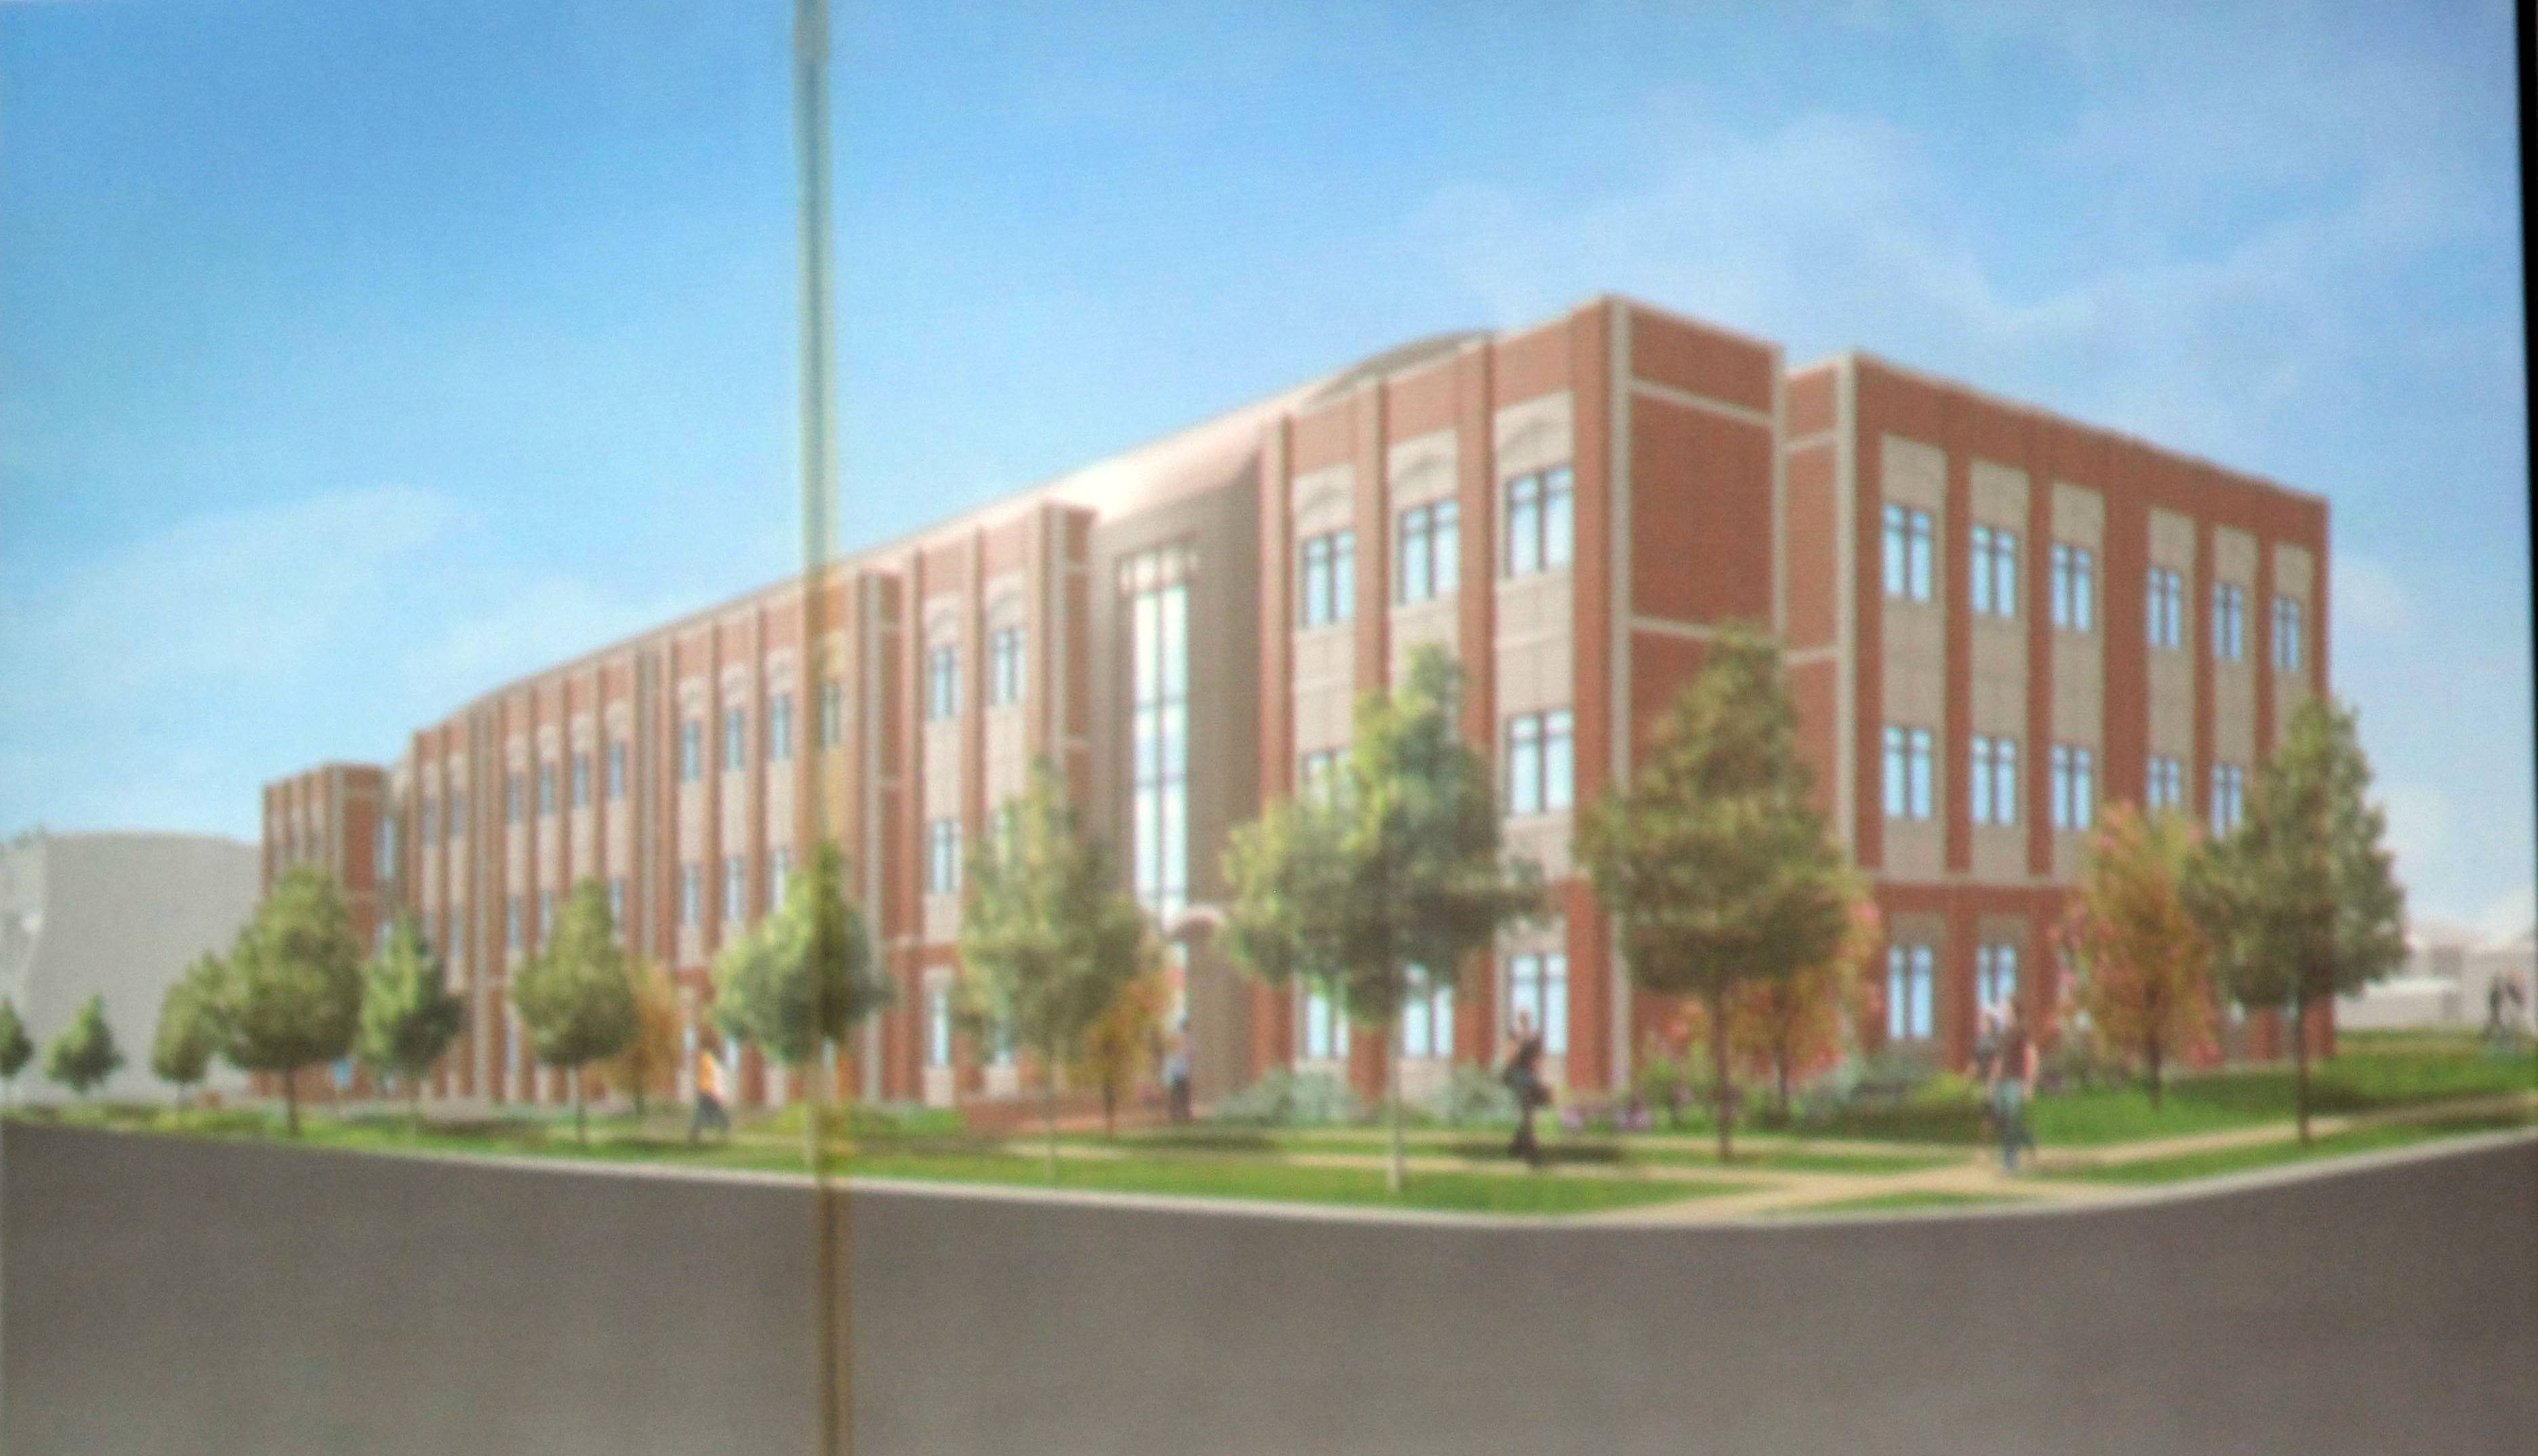 North Central College will re-evaluate plans for a $60 million, three-story science center on Loomis Street between Van Buren and Chicago avenues after Naperville's historic preservation commission denied a request to demolish six structures to make way for the new science building.